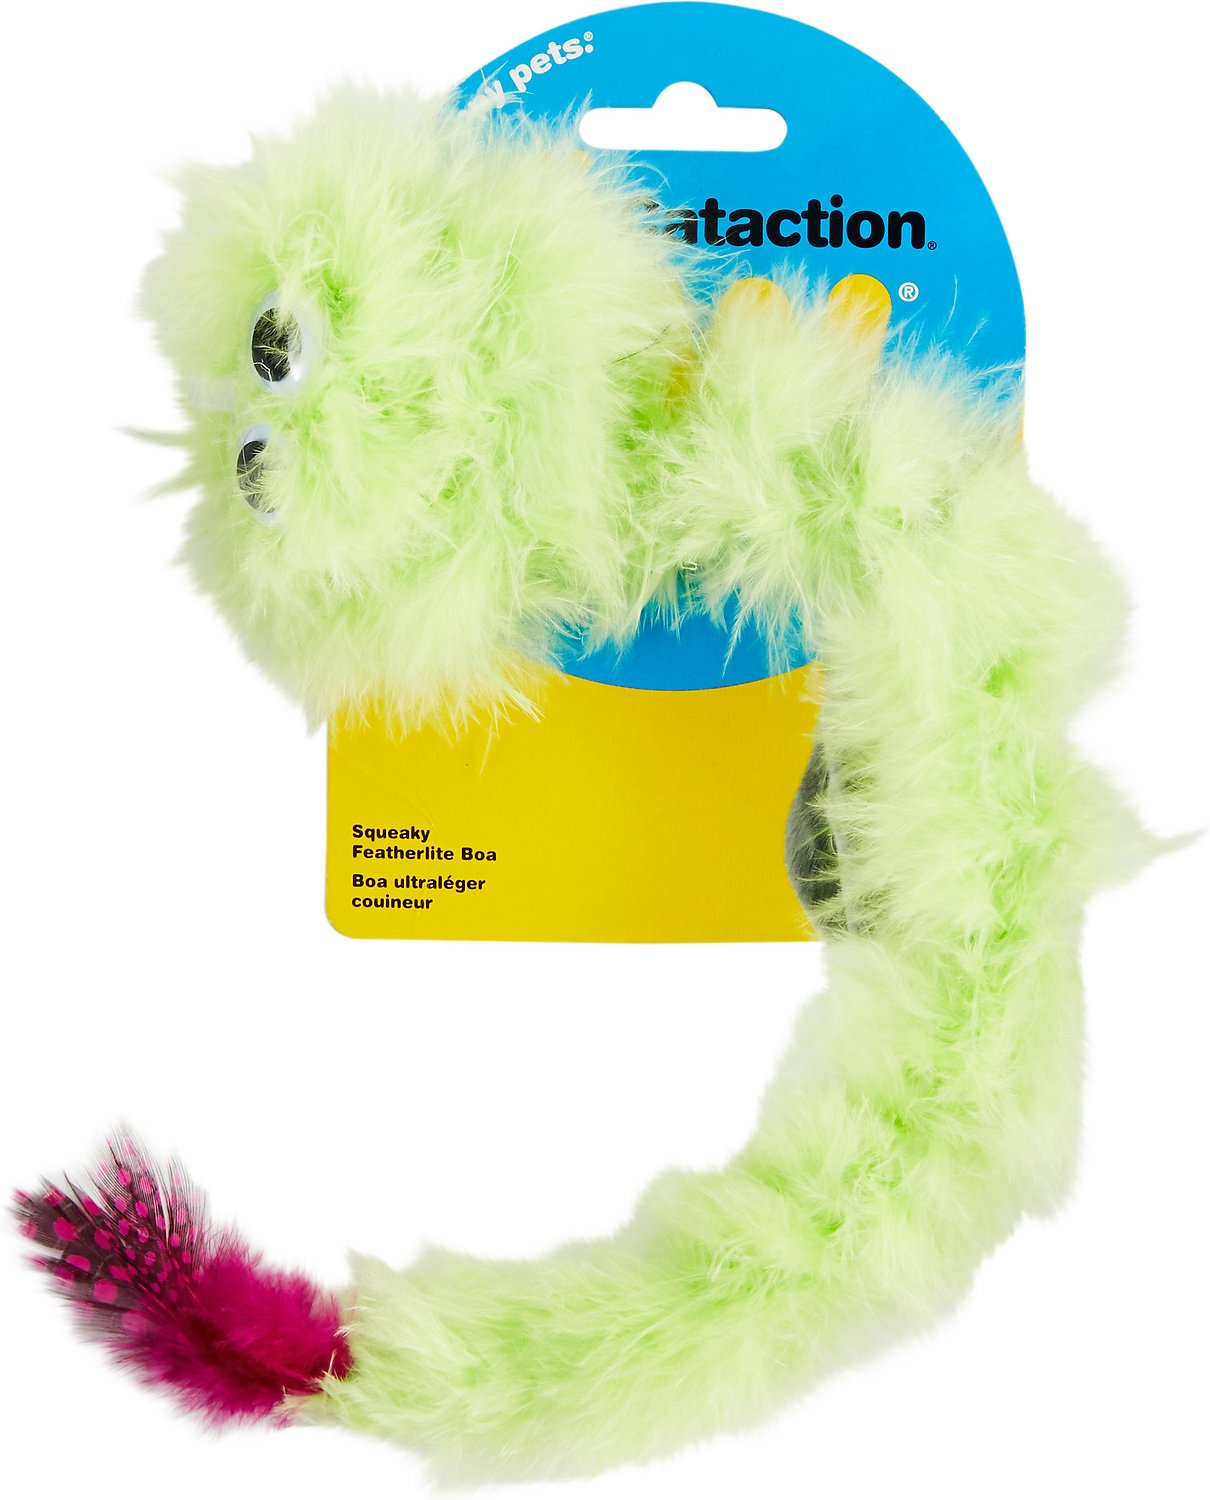 JW Pet Cataction Featherlite Catnip Boa Squeaking Cat Toy, Color Varies